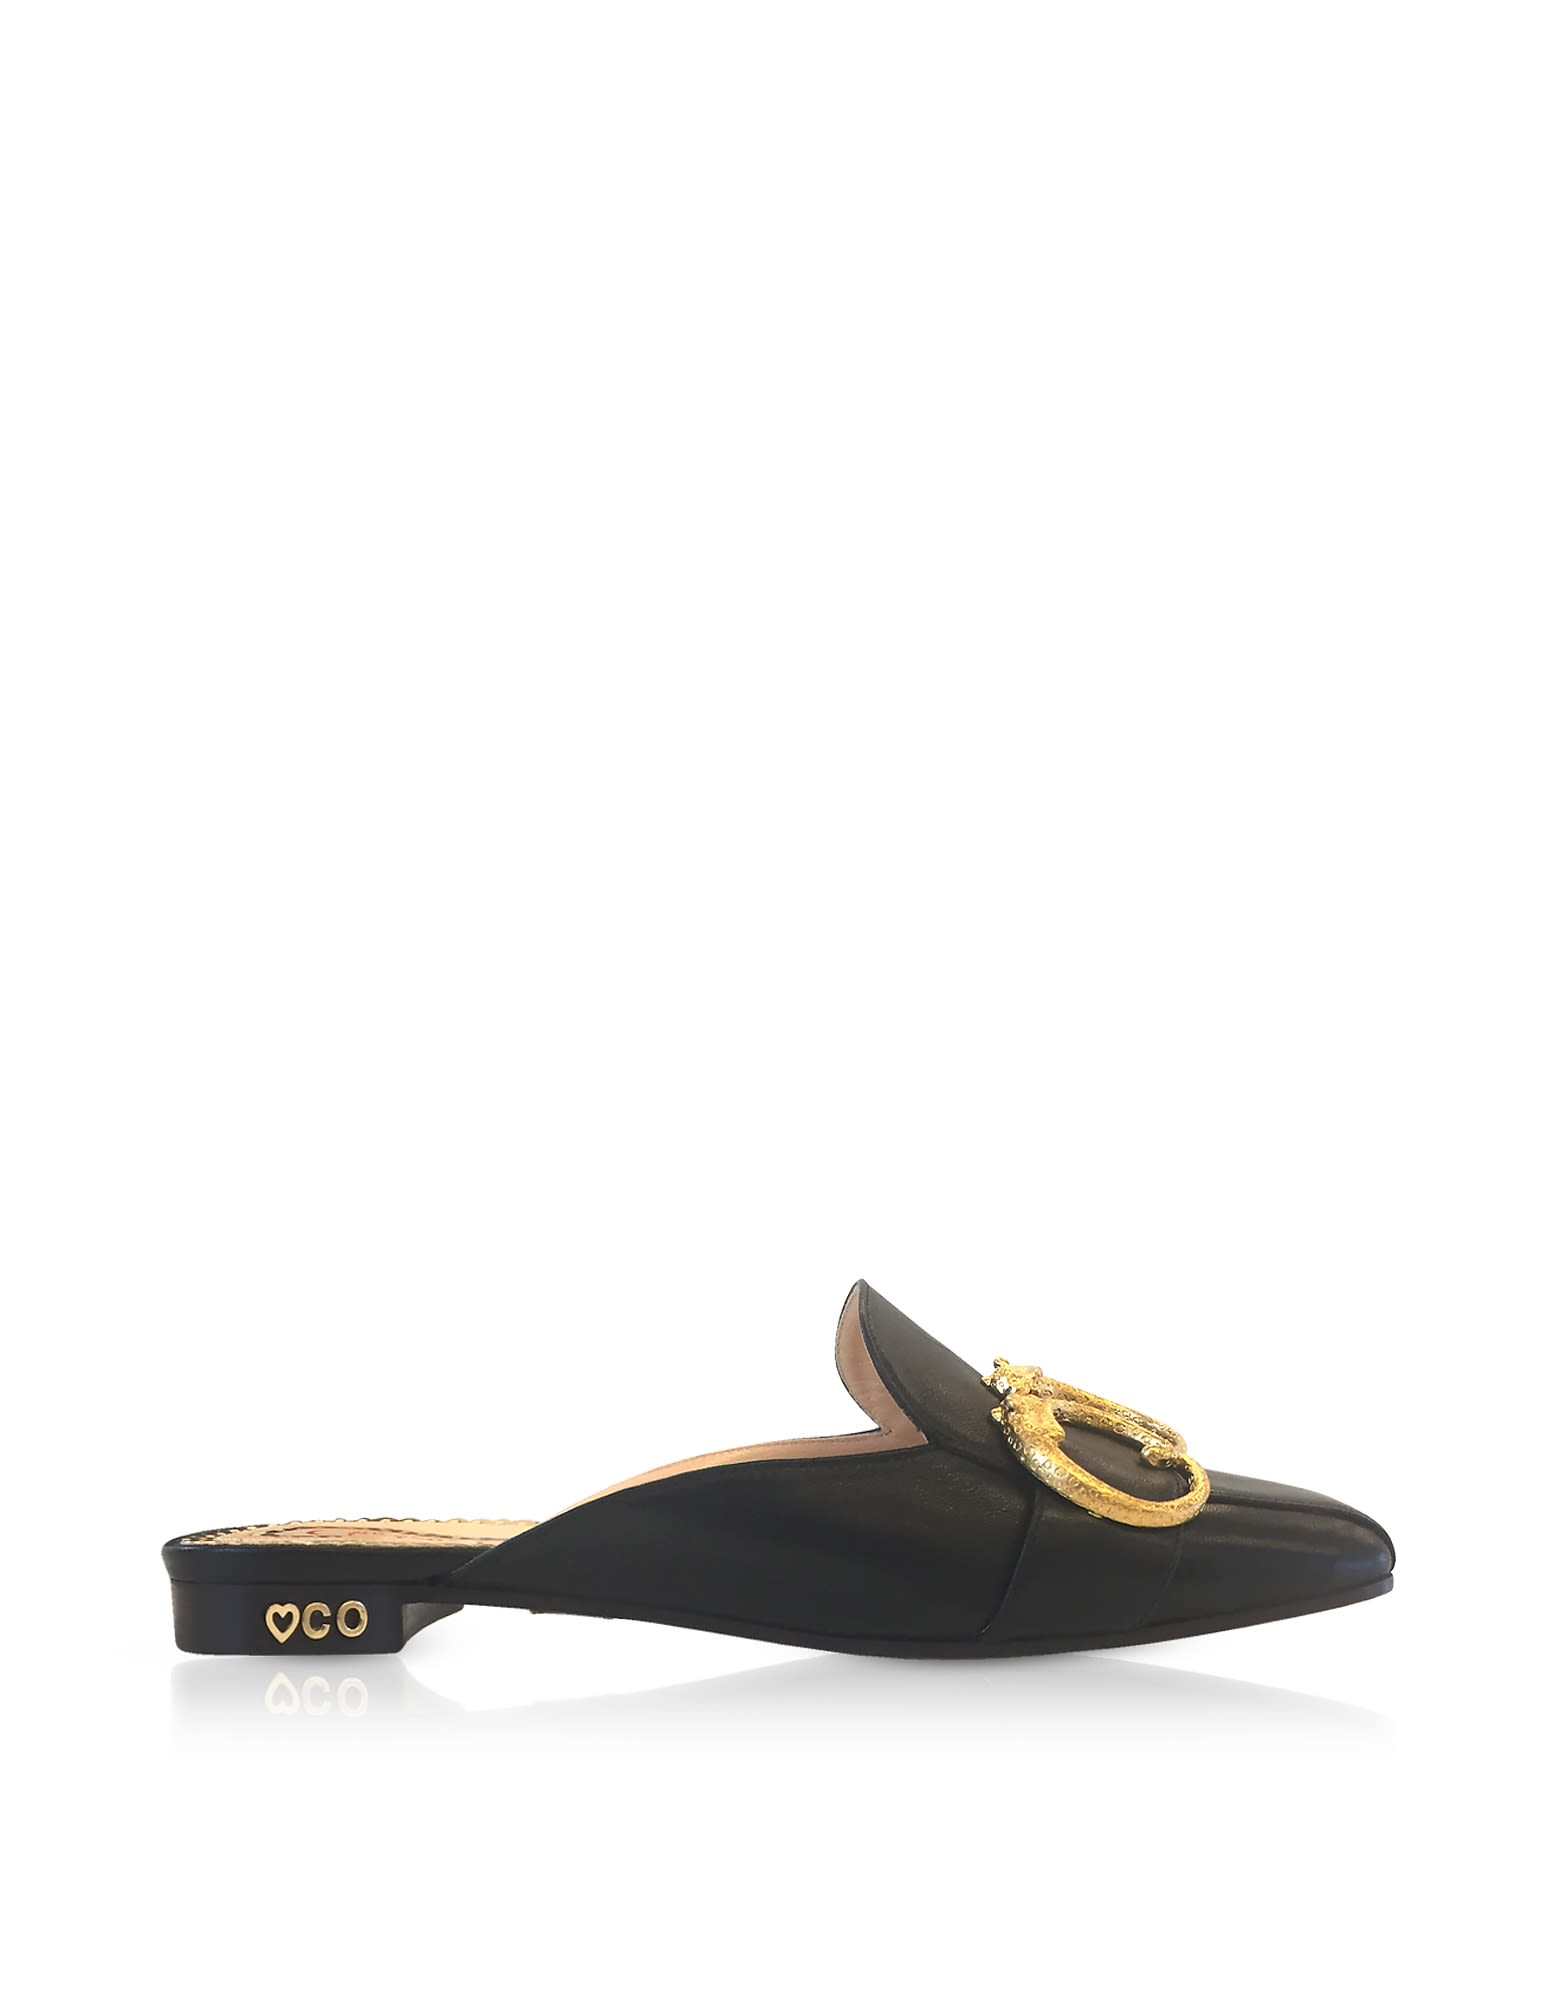 CHARLOTTE OLYMPIA BLACK LEATHER MULES